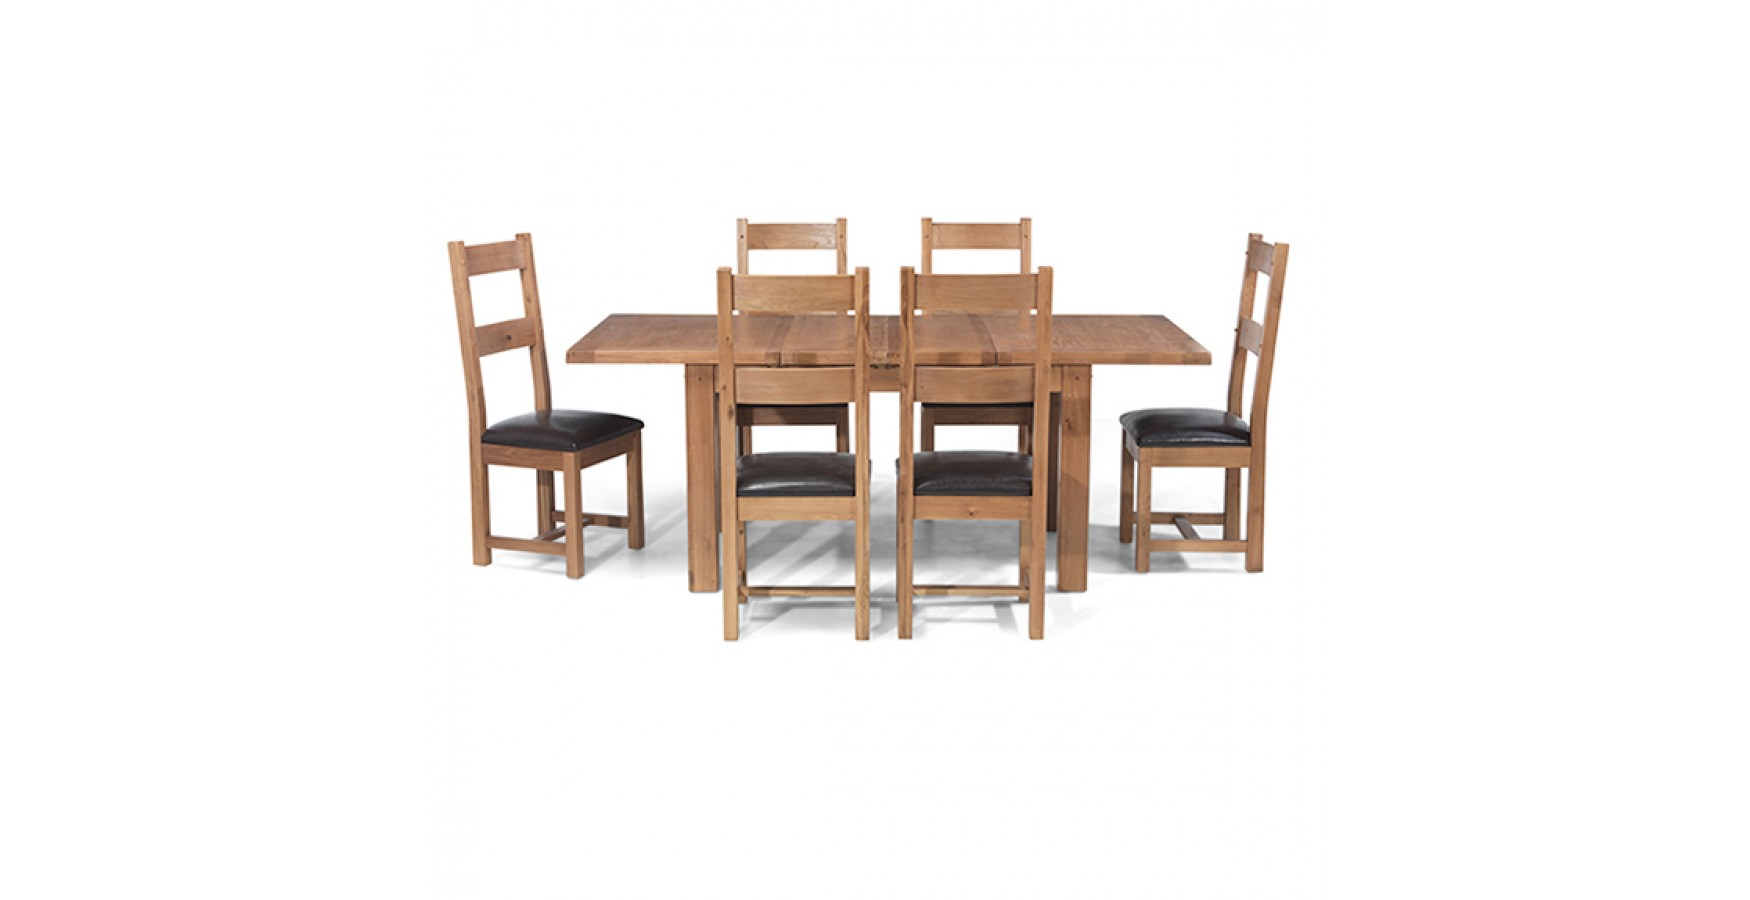 Dining Room Furniture Rustic Rustic Oak 132 198 Cm Extending Dining Table And 6 Chairs